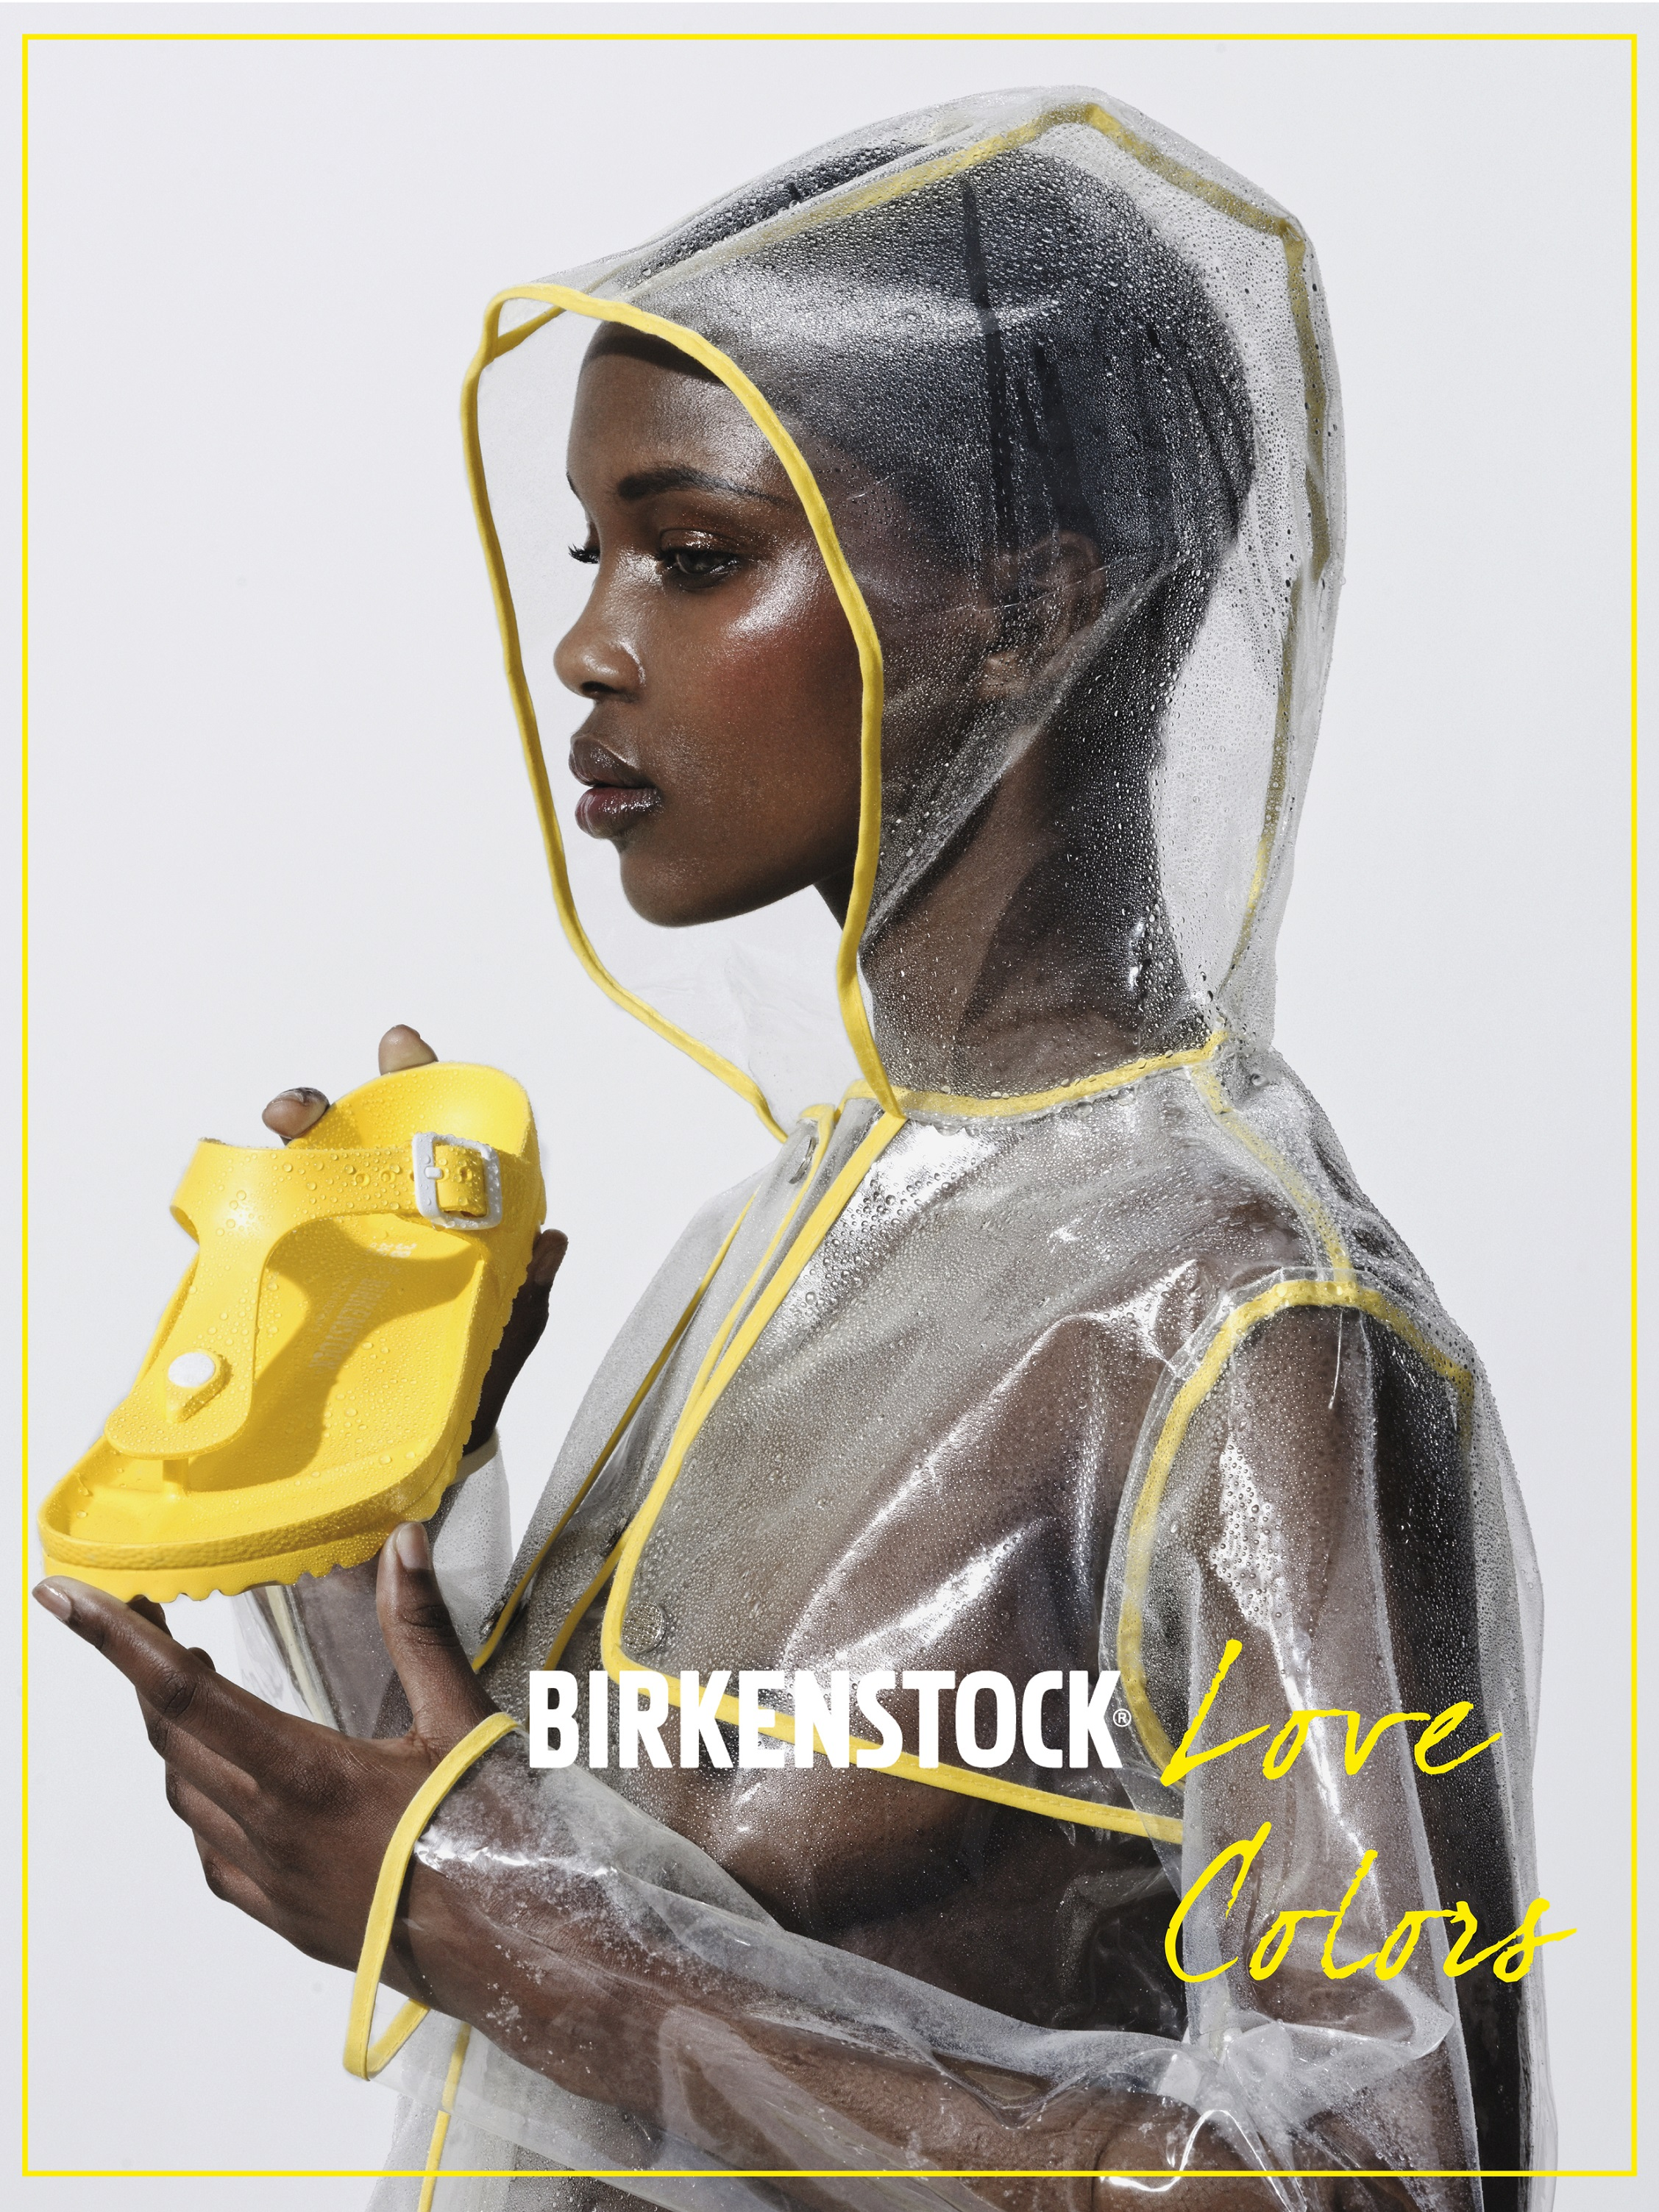 Aliane for Birkenstock